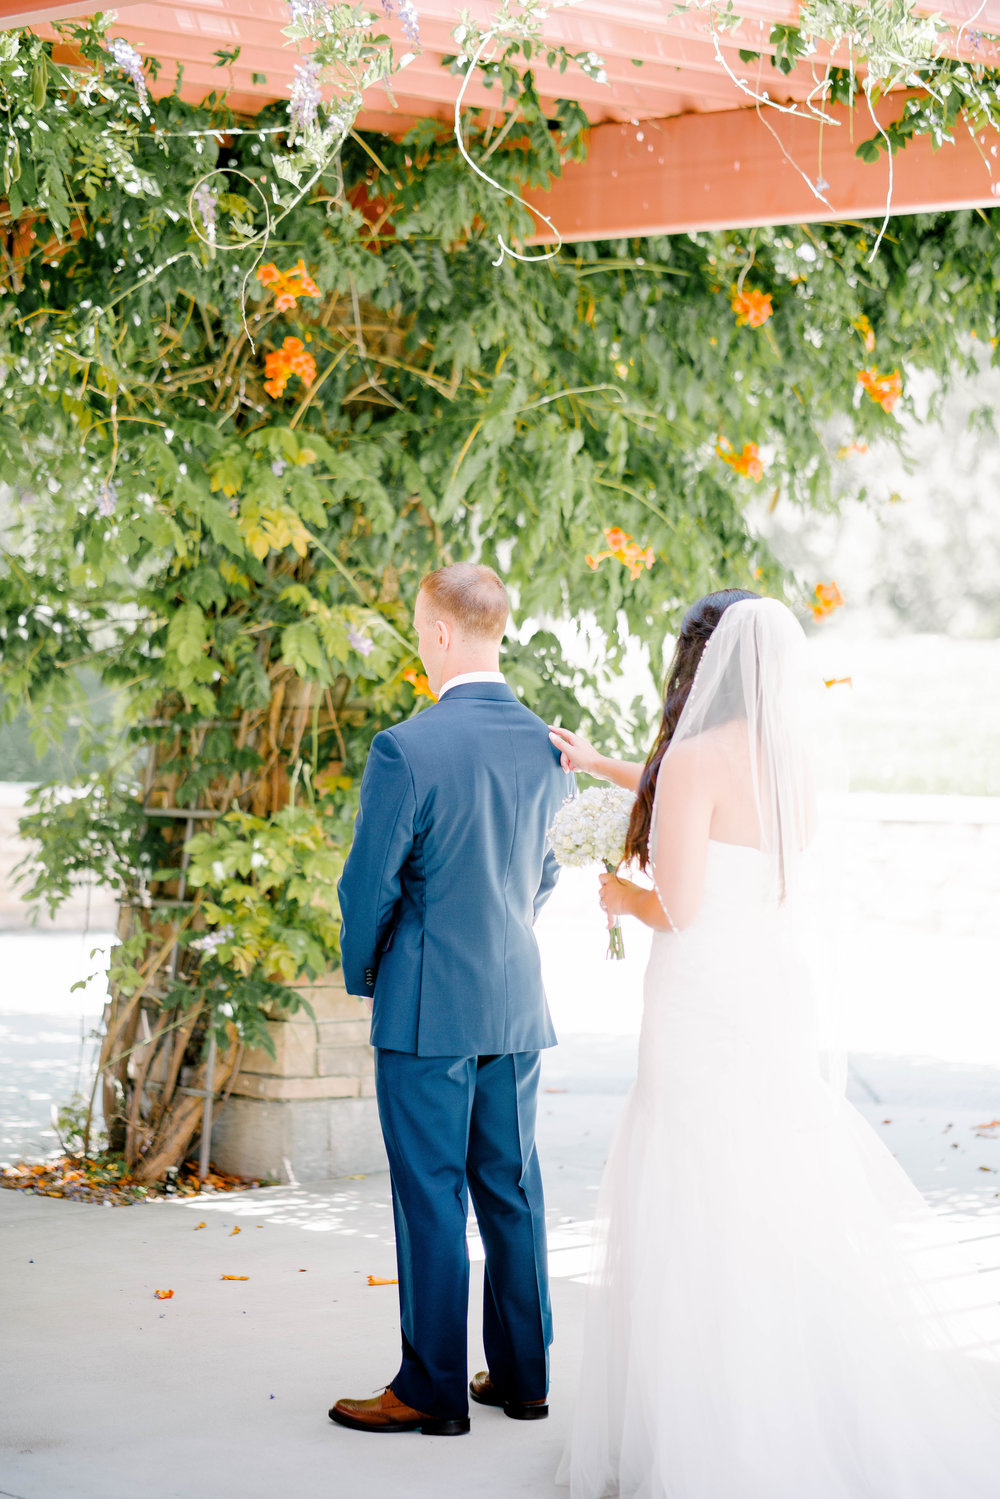 Boise Wedding-Boise Wedding Photographer-Barber Park Wedding-First Look-First Look Ideas-Wedding Ideas-Wedding Photo Ideas